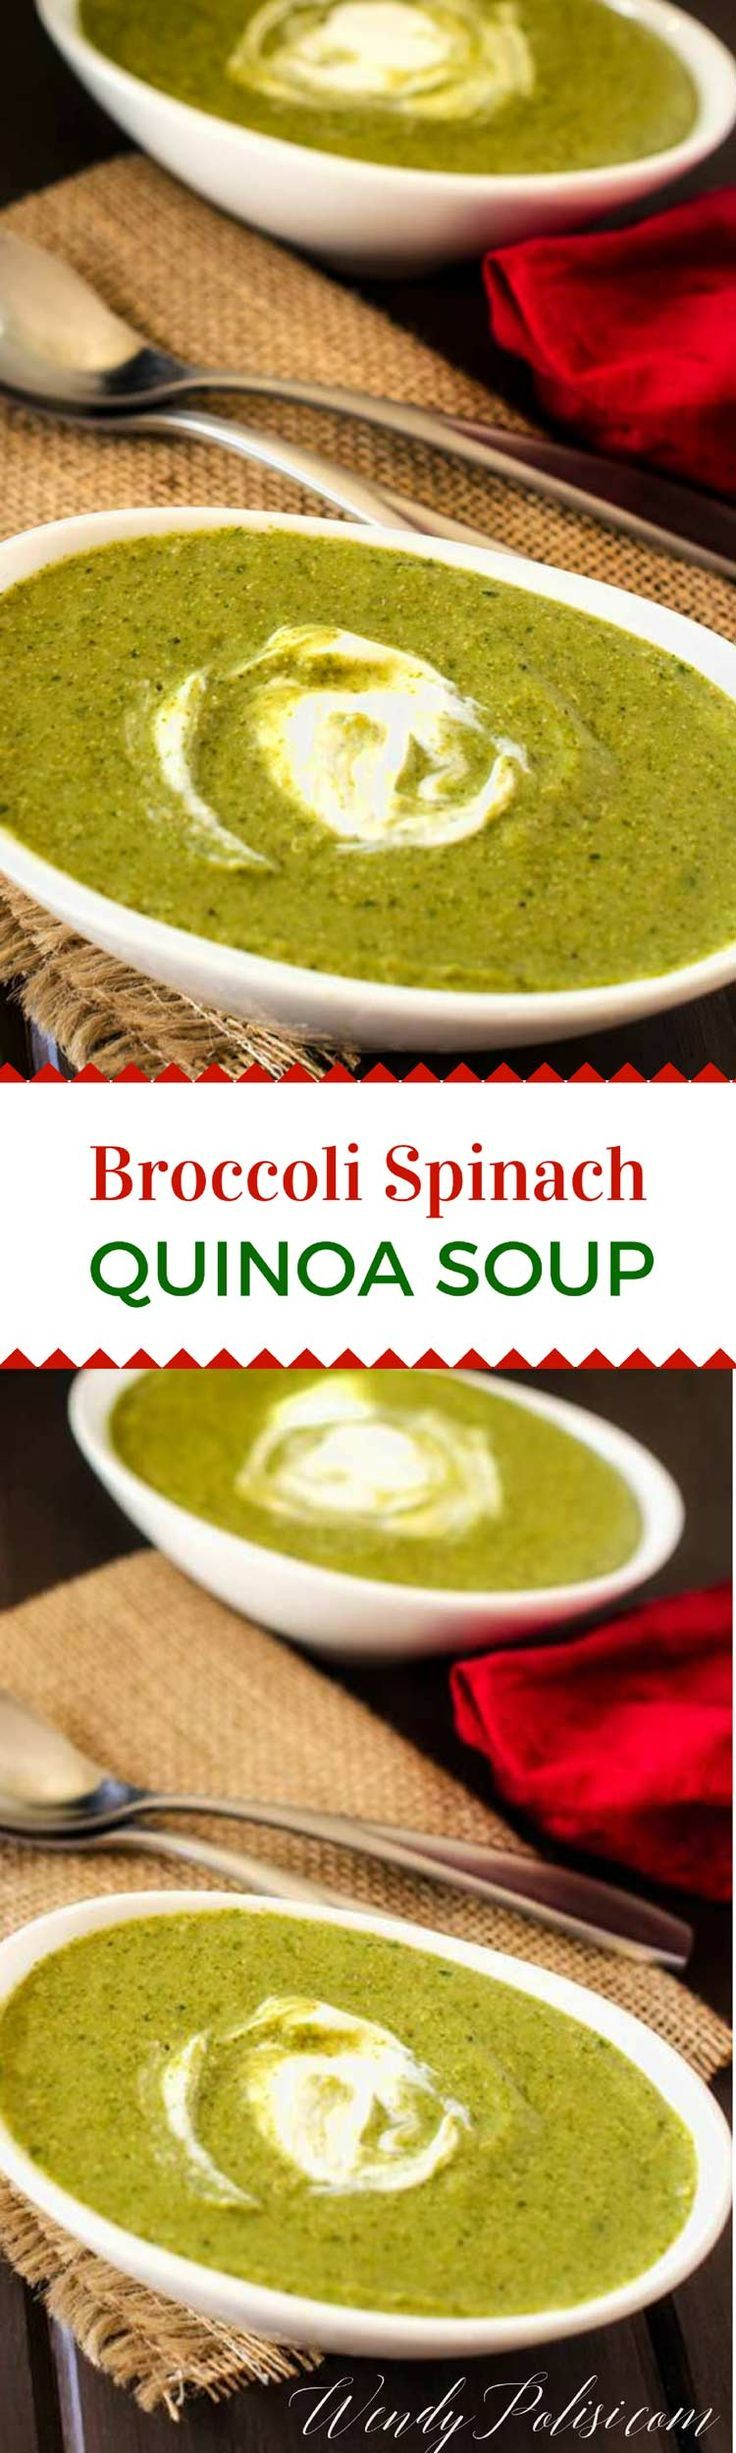 Broccoli Spinach Quinoa Soup -This Broccoli Spinach Quinoa soup is packed with nutrition and so delicious. You can easily make it vegan by substituting Daiya shreds for the cheese. via @wendypolisi